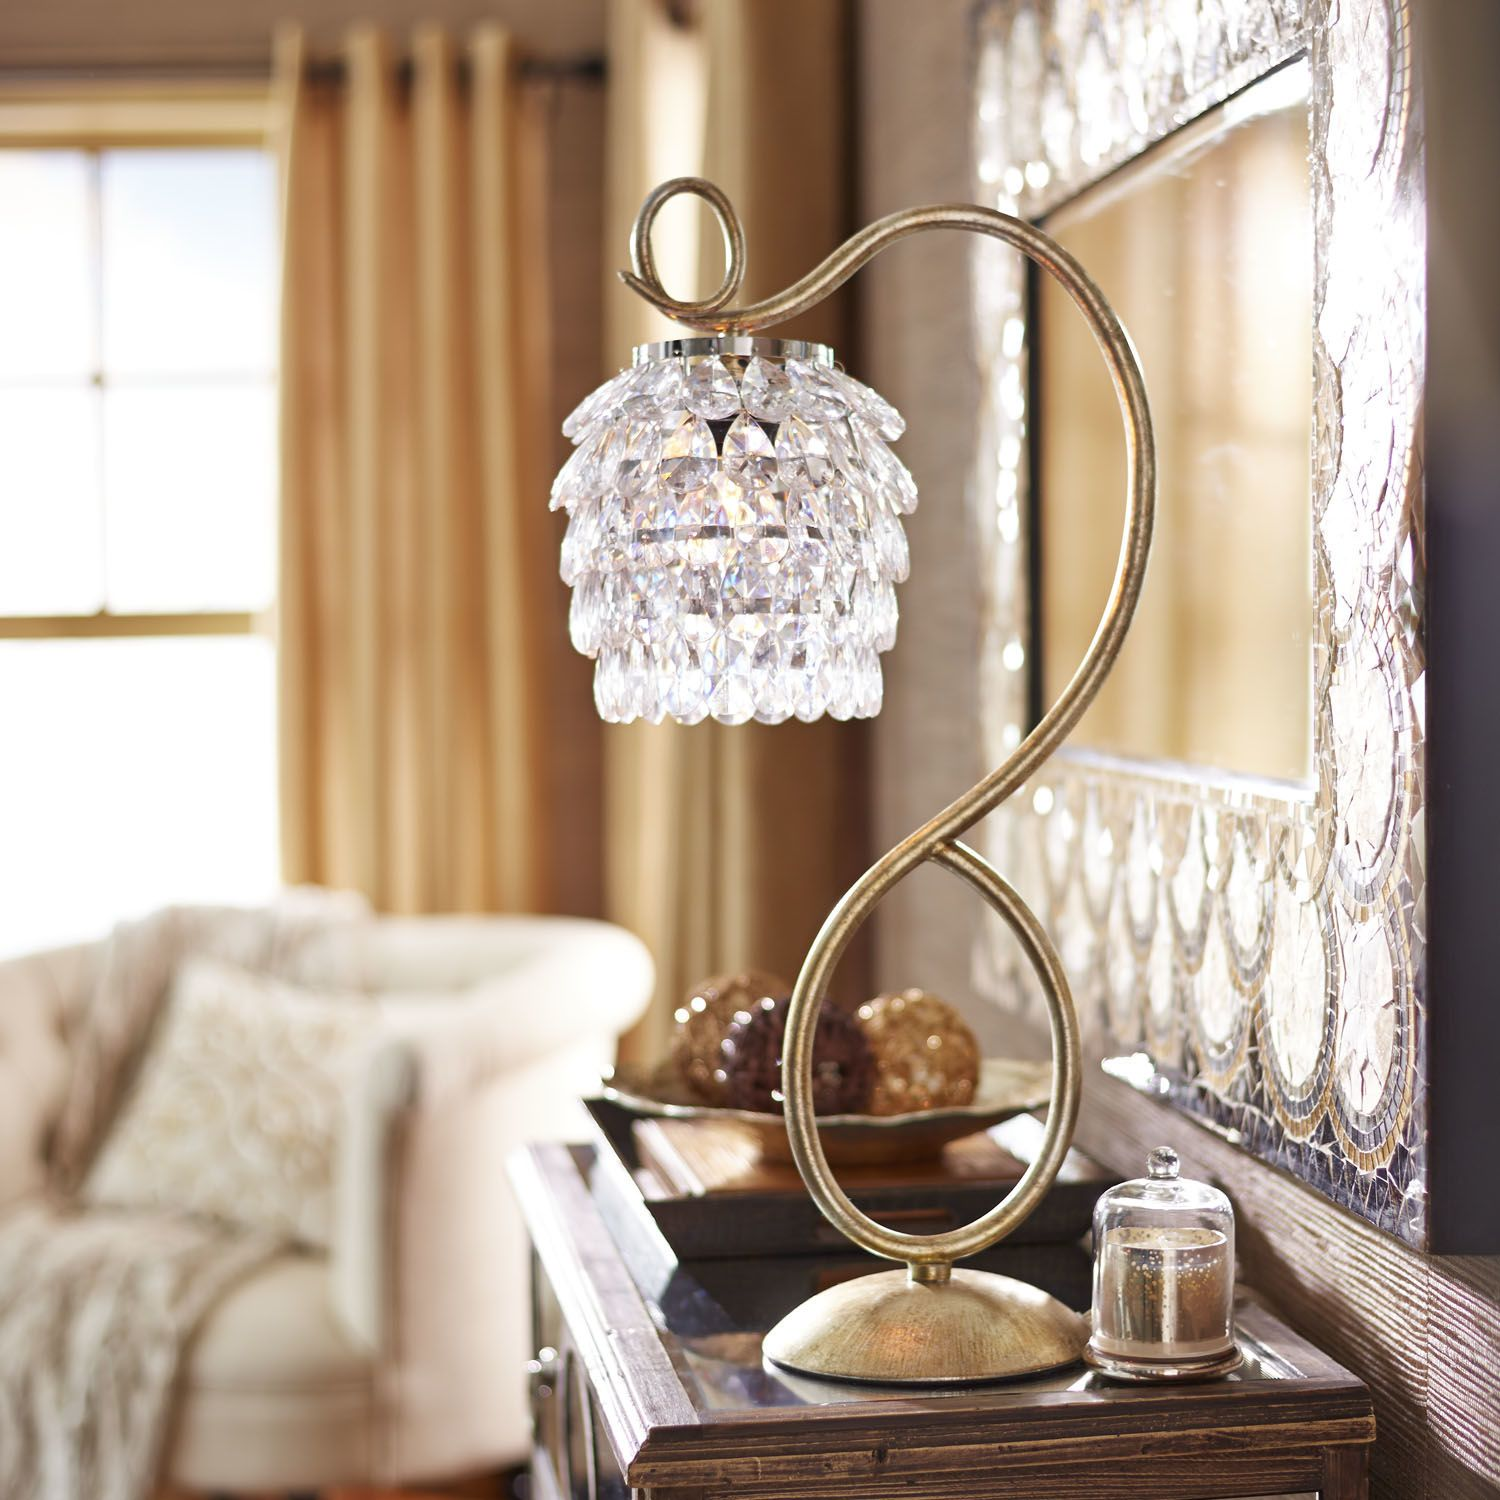 Pier One Bedroom Swirls Drops Lamp Gold Pier 1 Imports When Wishes Come